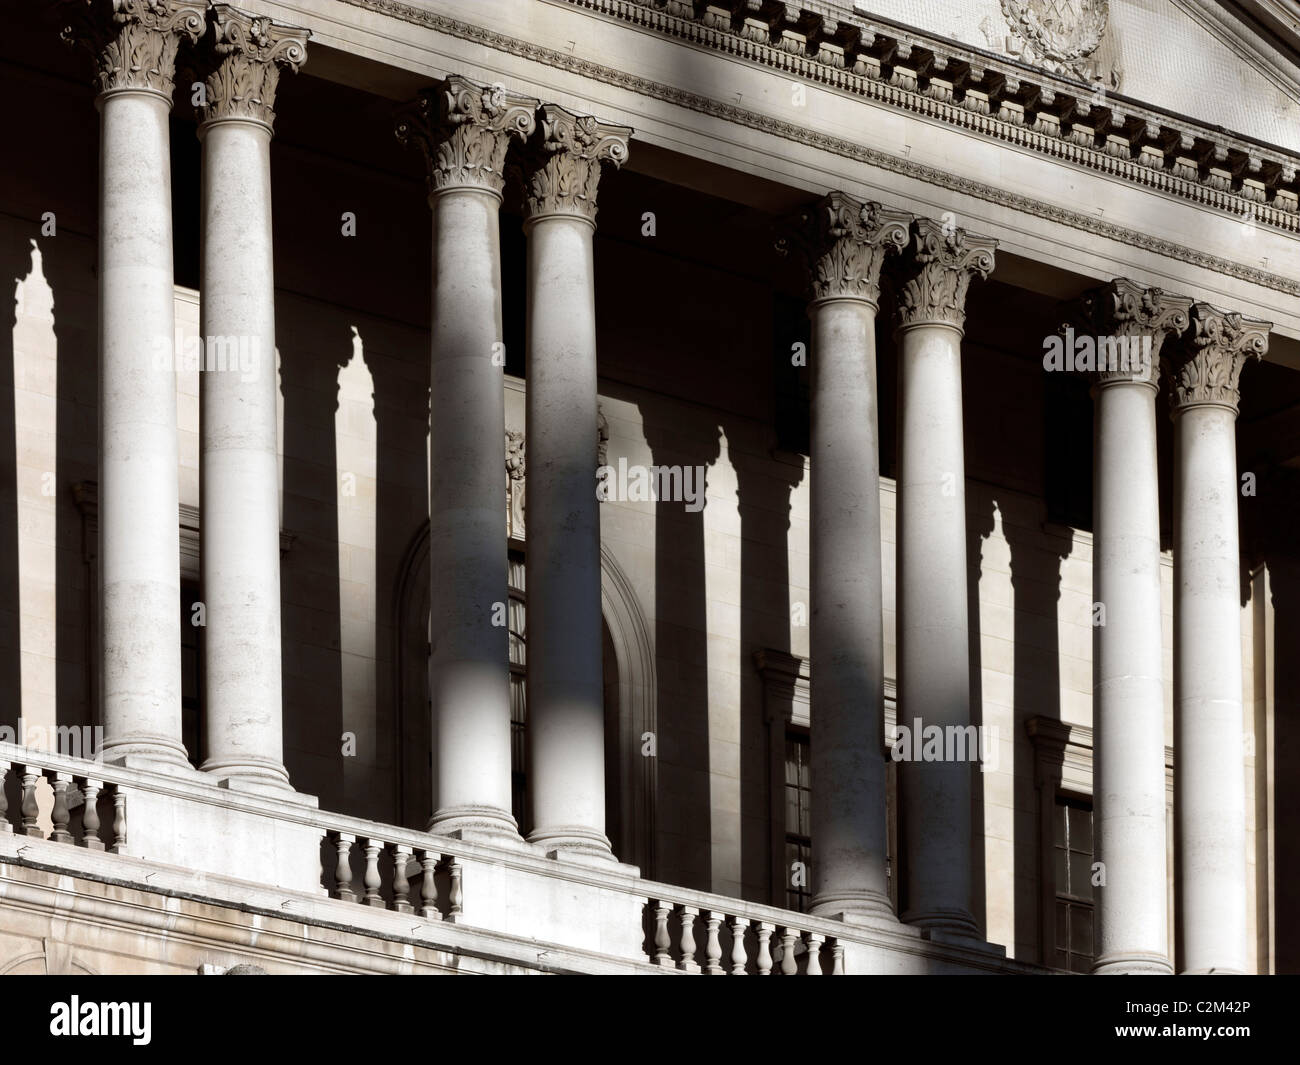 Bank of England, Threadneedle Street, City of London. Detail of pediment and columns - Stock Image